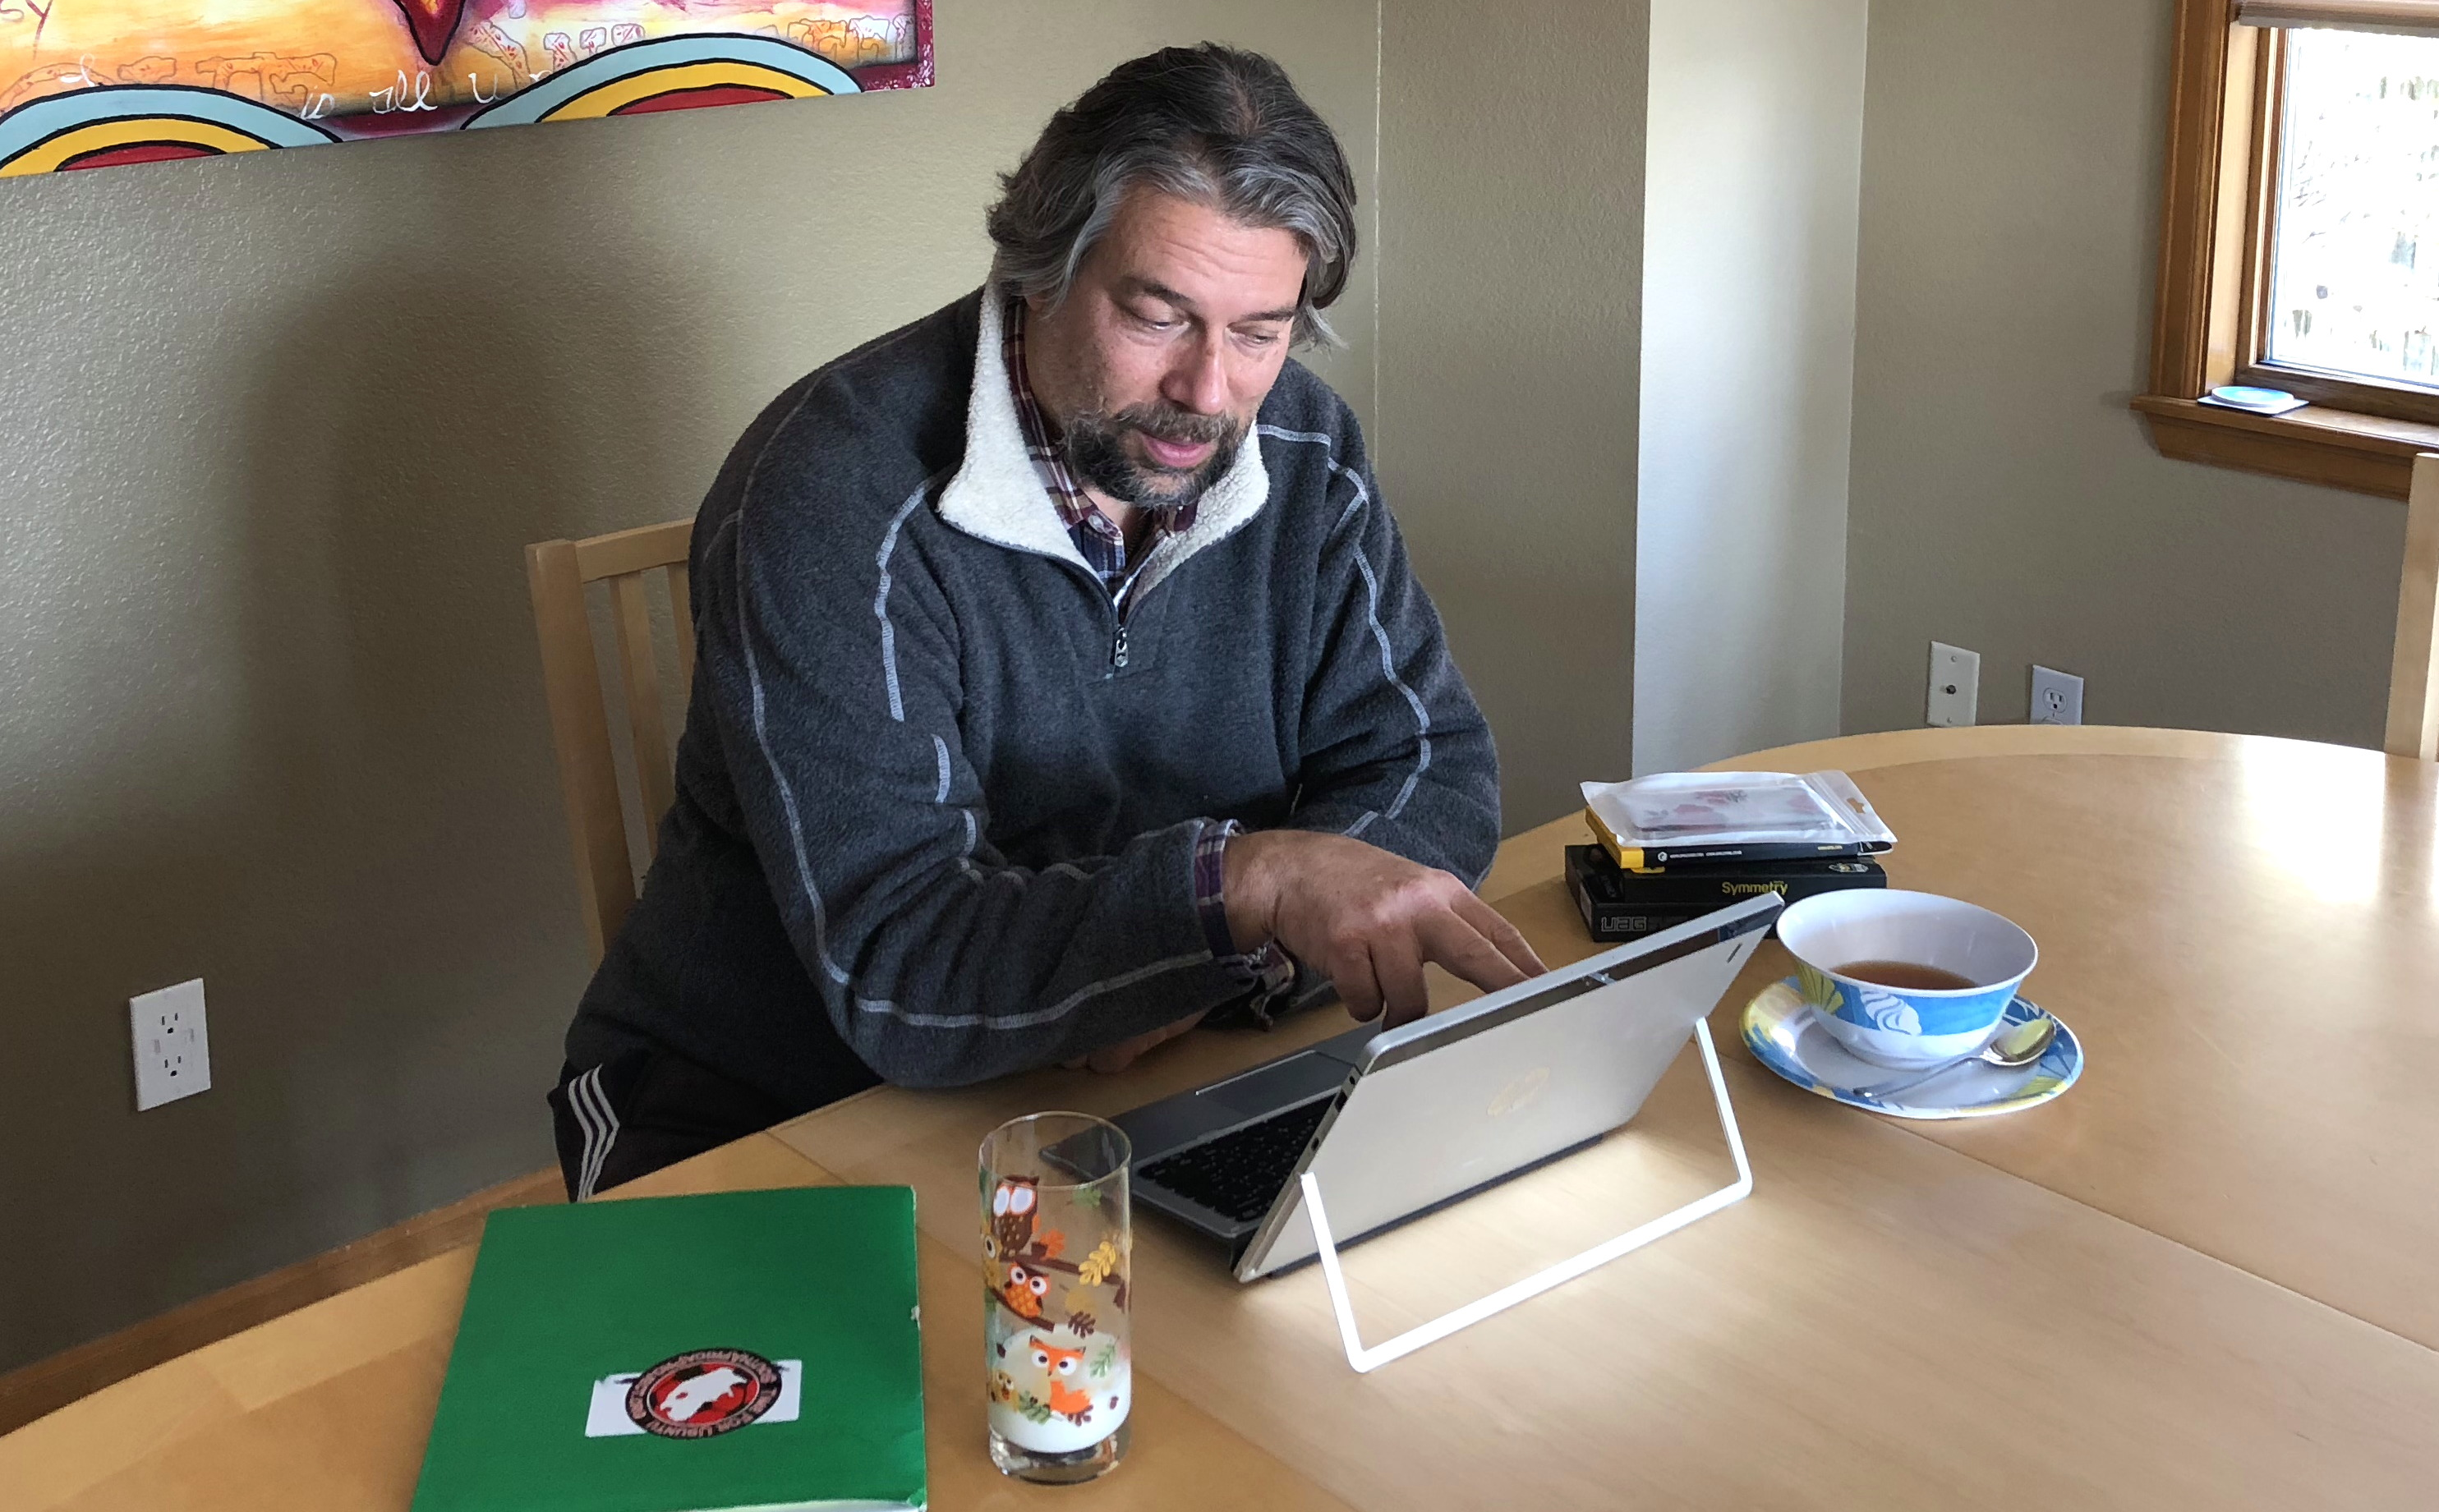 man working at dining table office desk